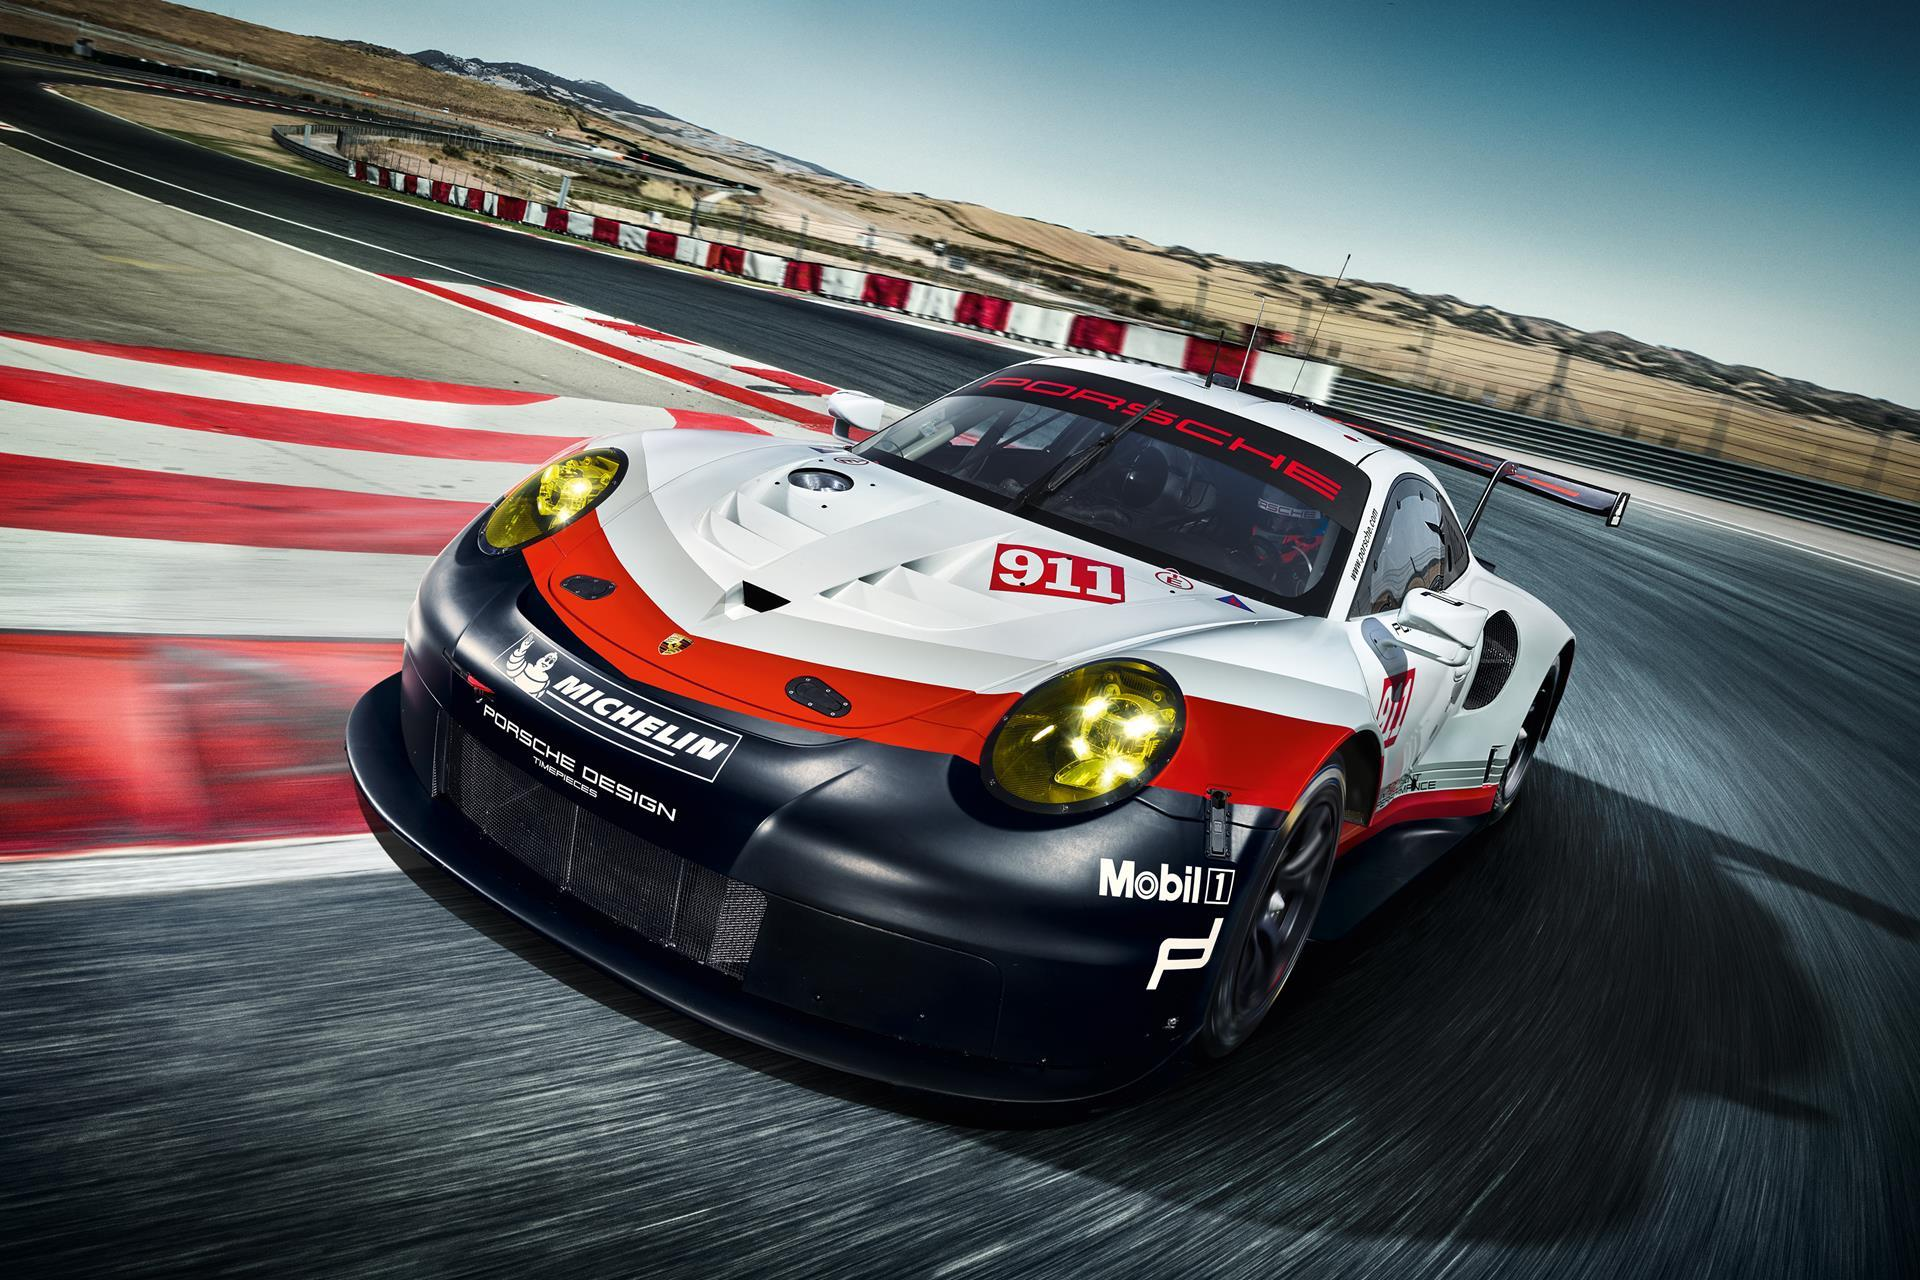 2017 Porsche 911 Rsr News And Information Research And Pricing